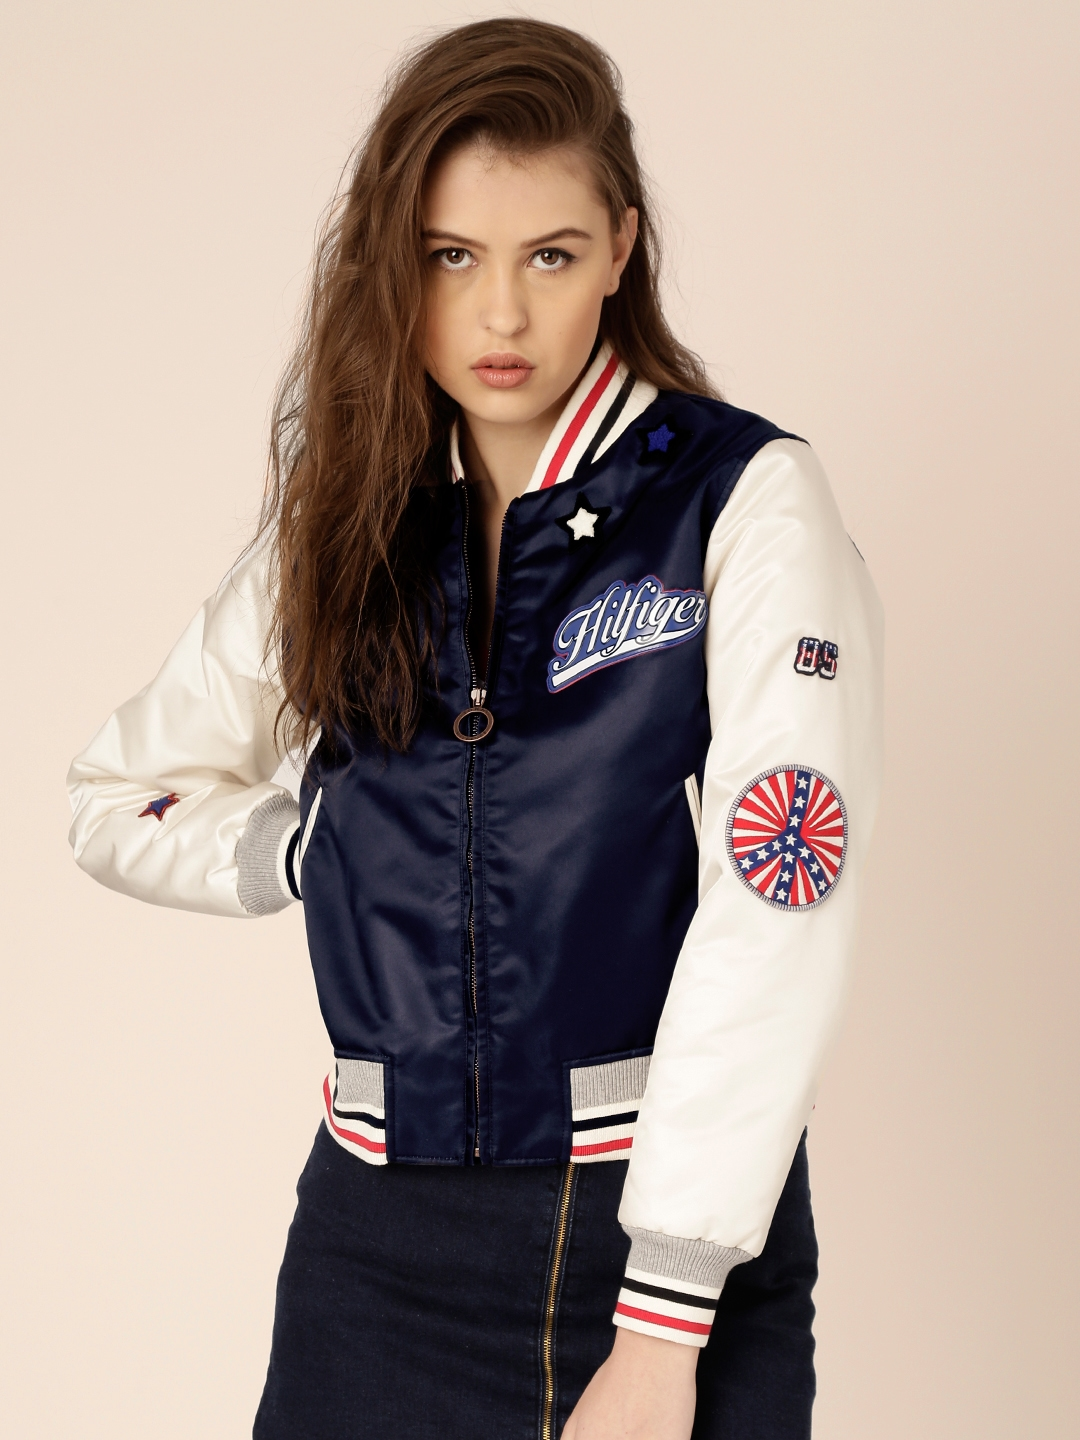 9717a2a1 Buy Tommy Hilfiger By Gigi Hadid Navy Young America Bomber Jacket - Jackets  for Women 1753089 | Myntra